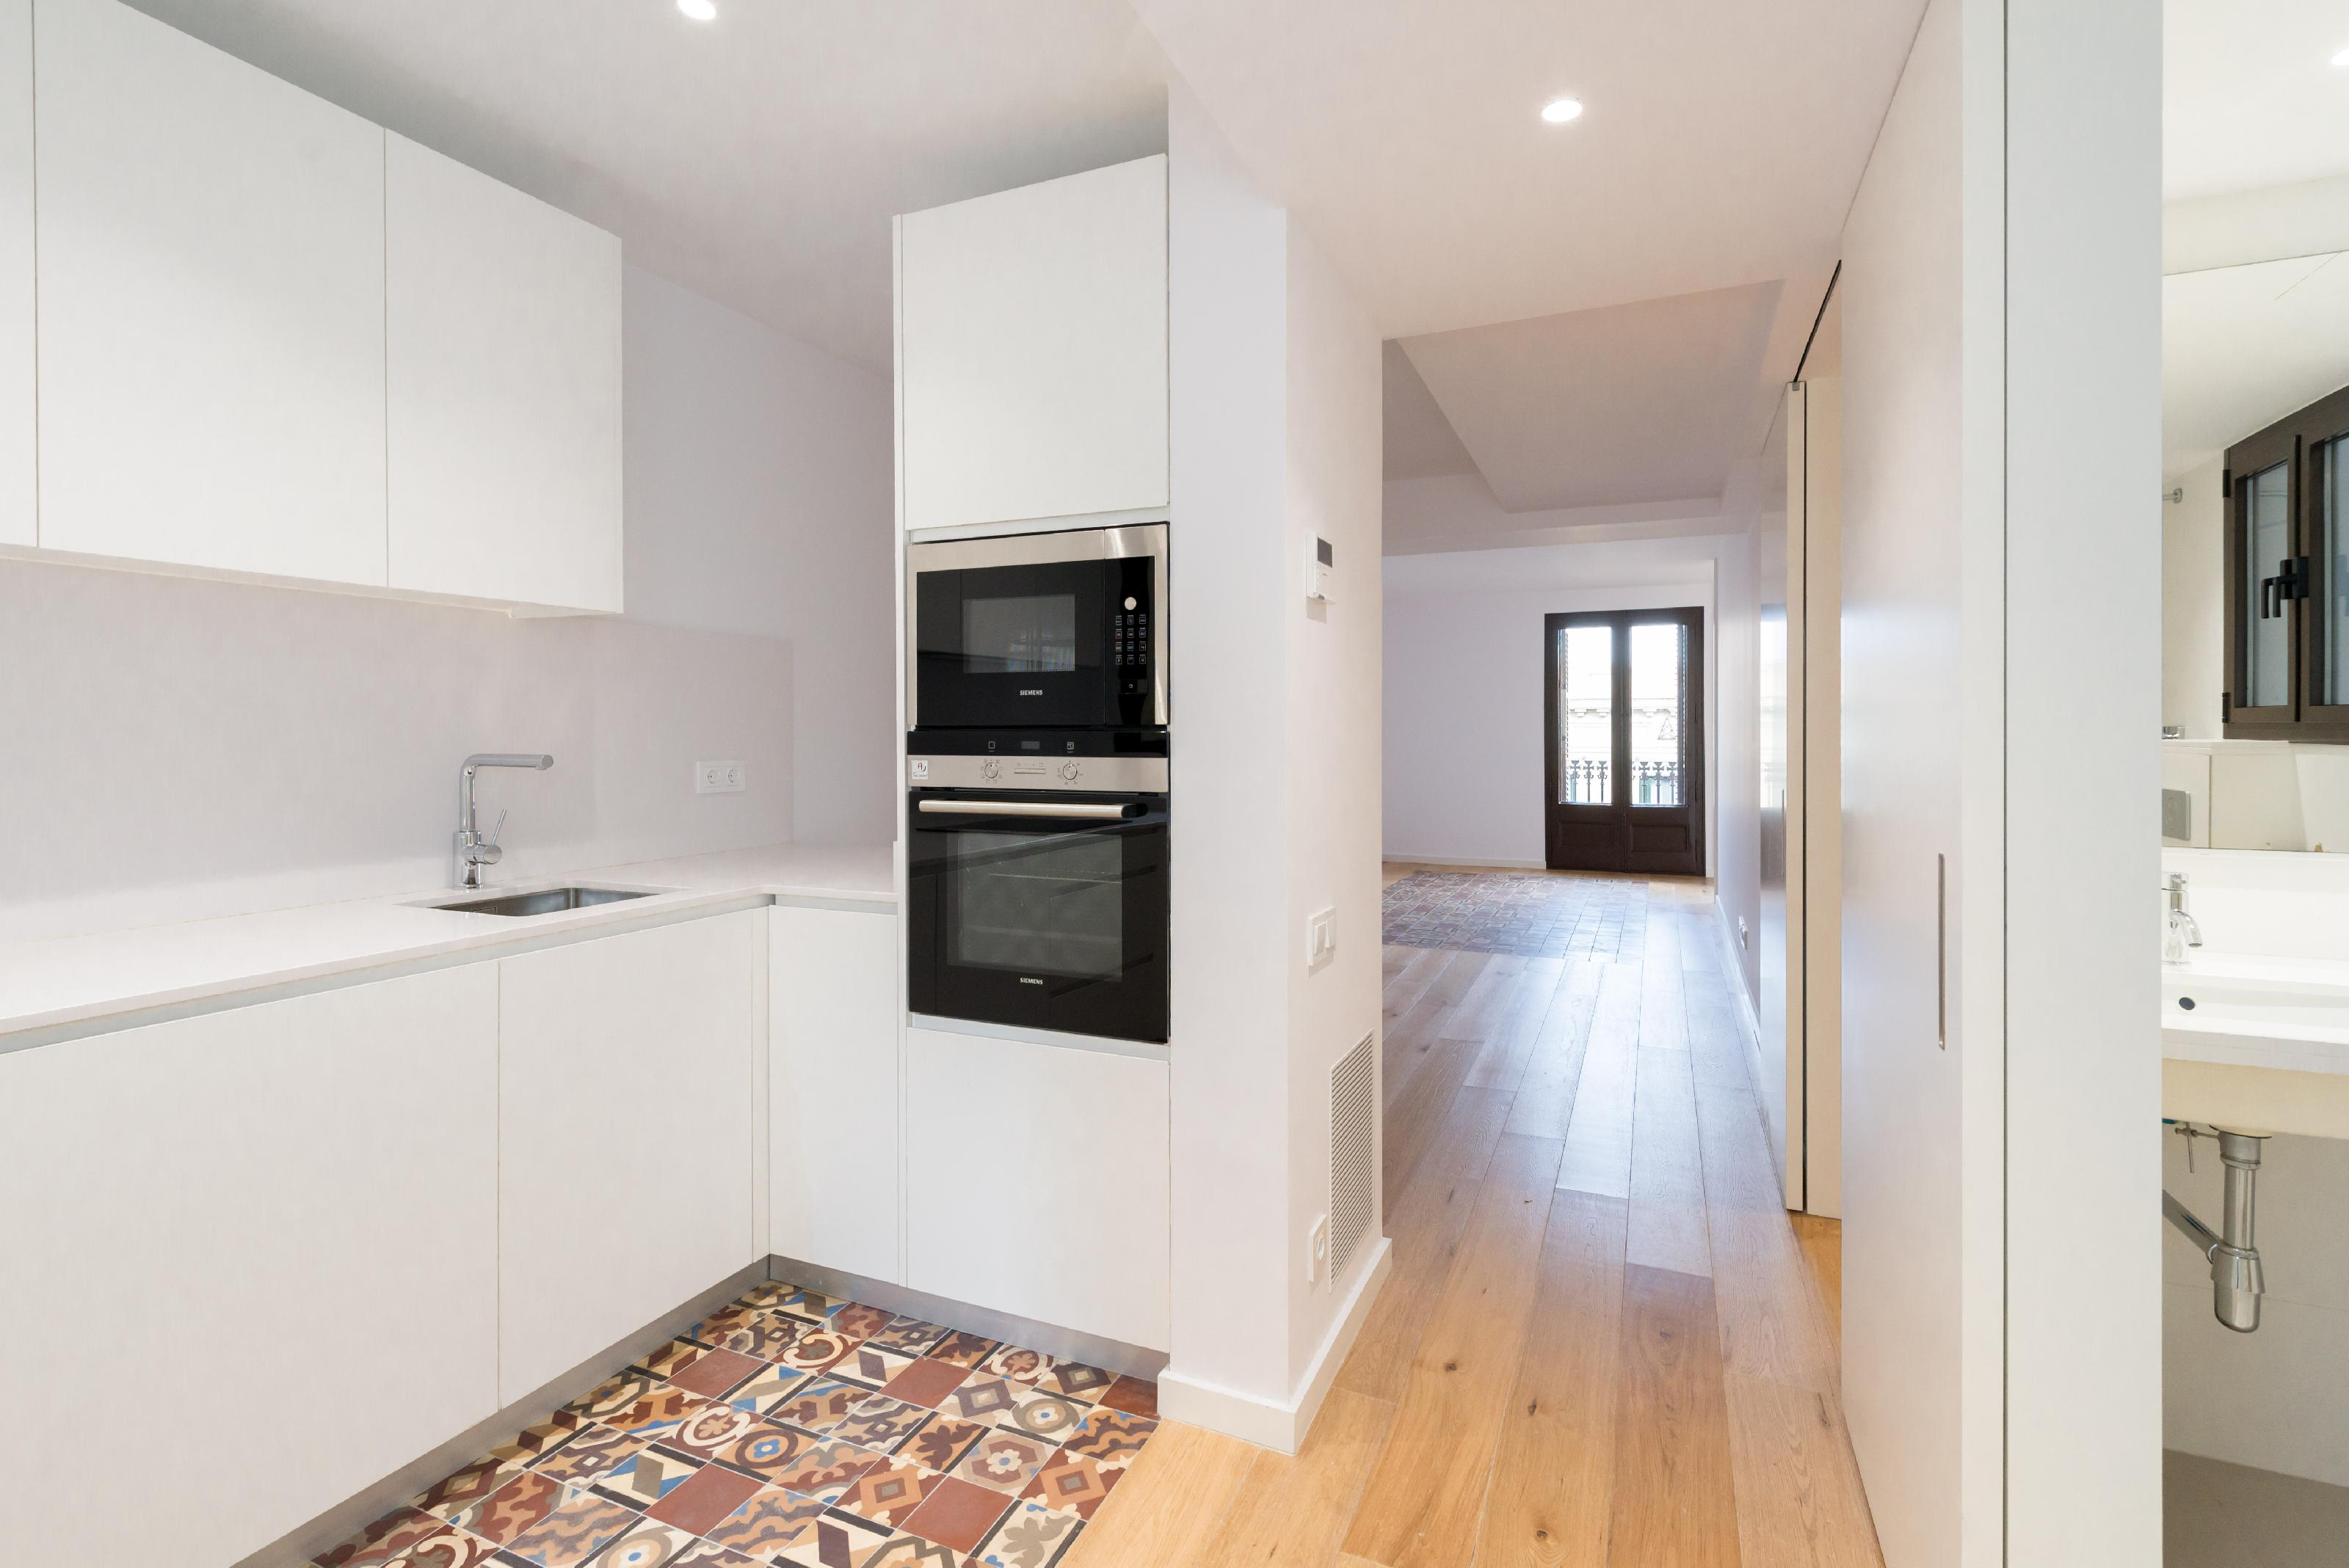 236358 Flat for sale in Eixample, Old Left Eixample 8